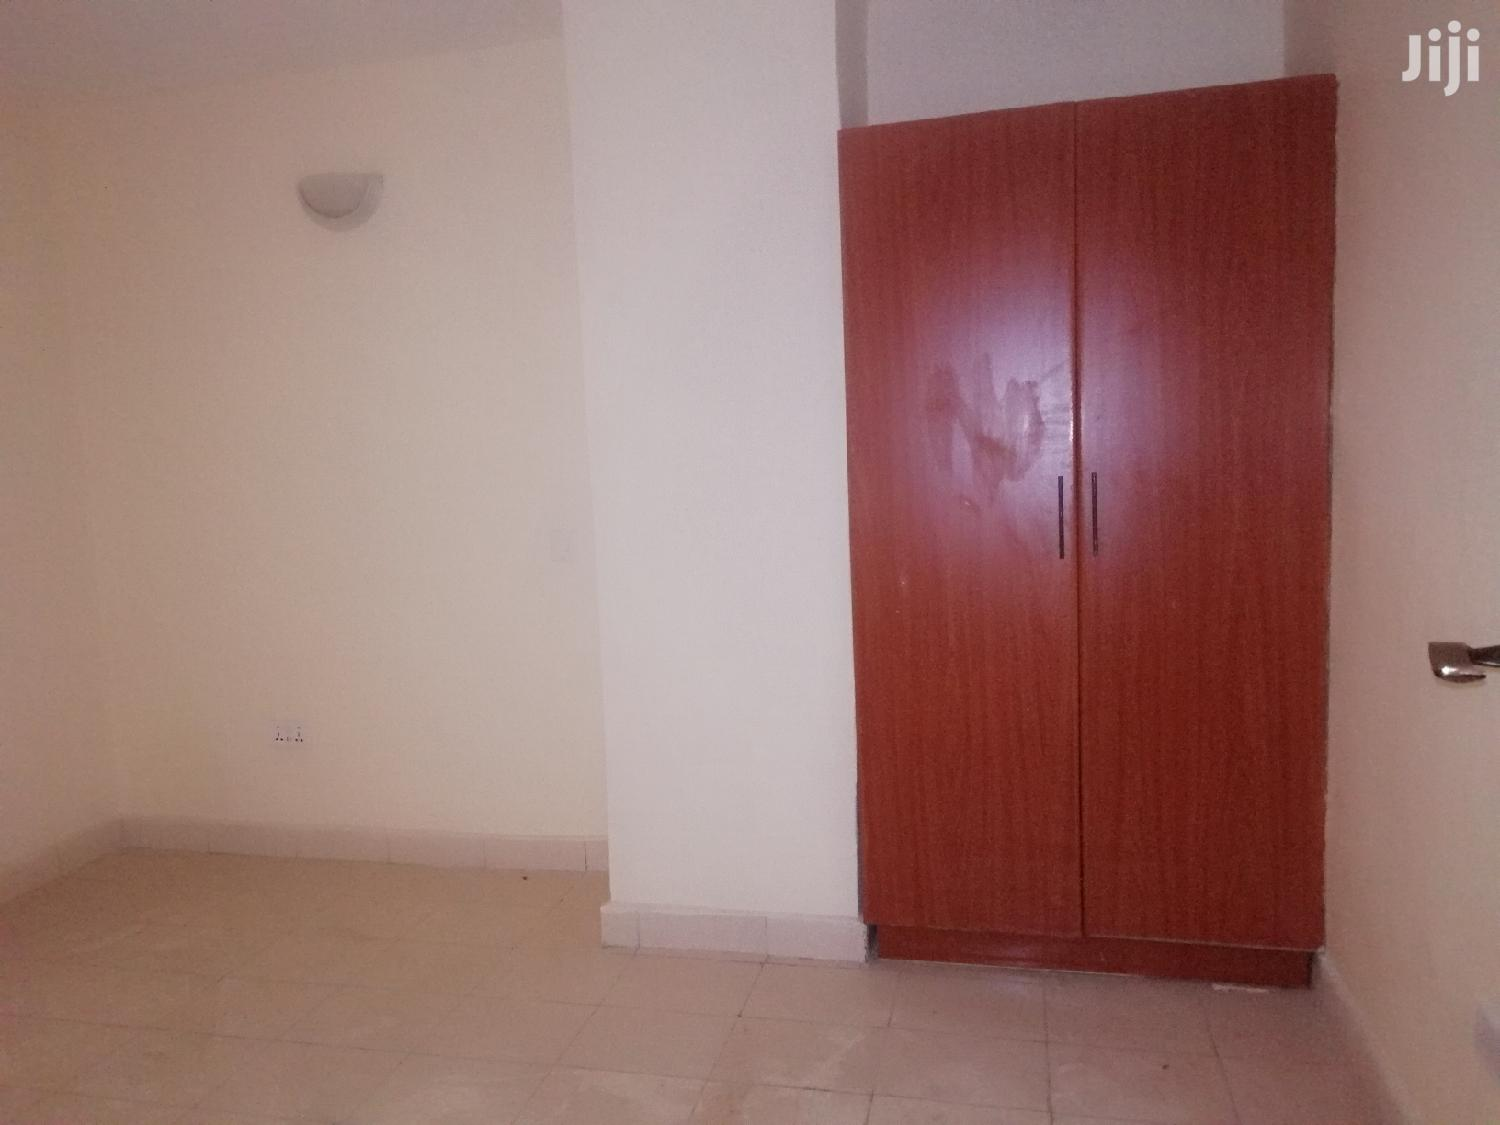 Studio Apartment With High Quality Finishes And Very Secure | Houses & Apartments For Rent for sale in Lavington, Nairobi, Kenya